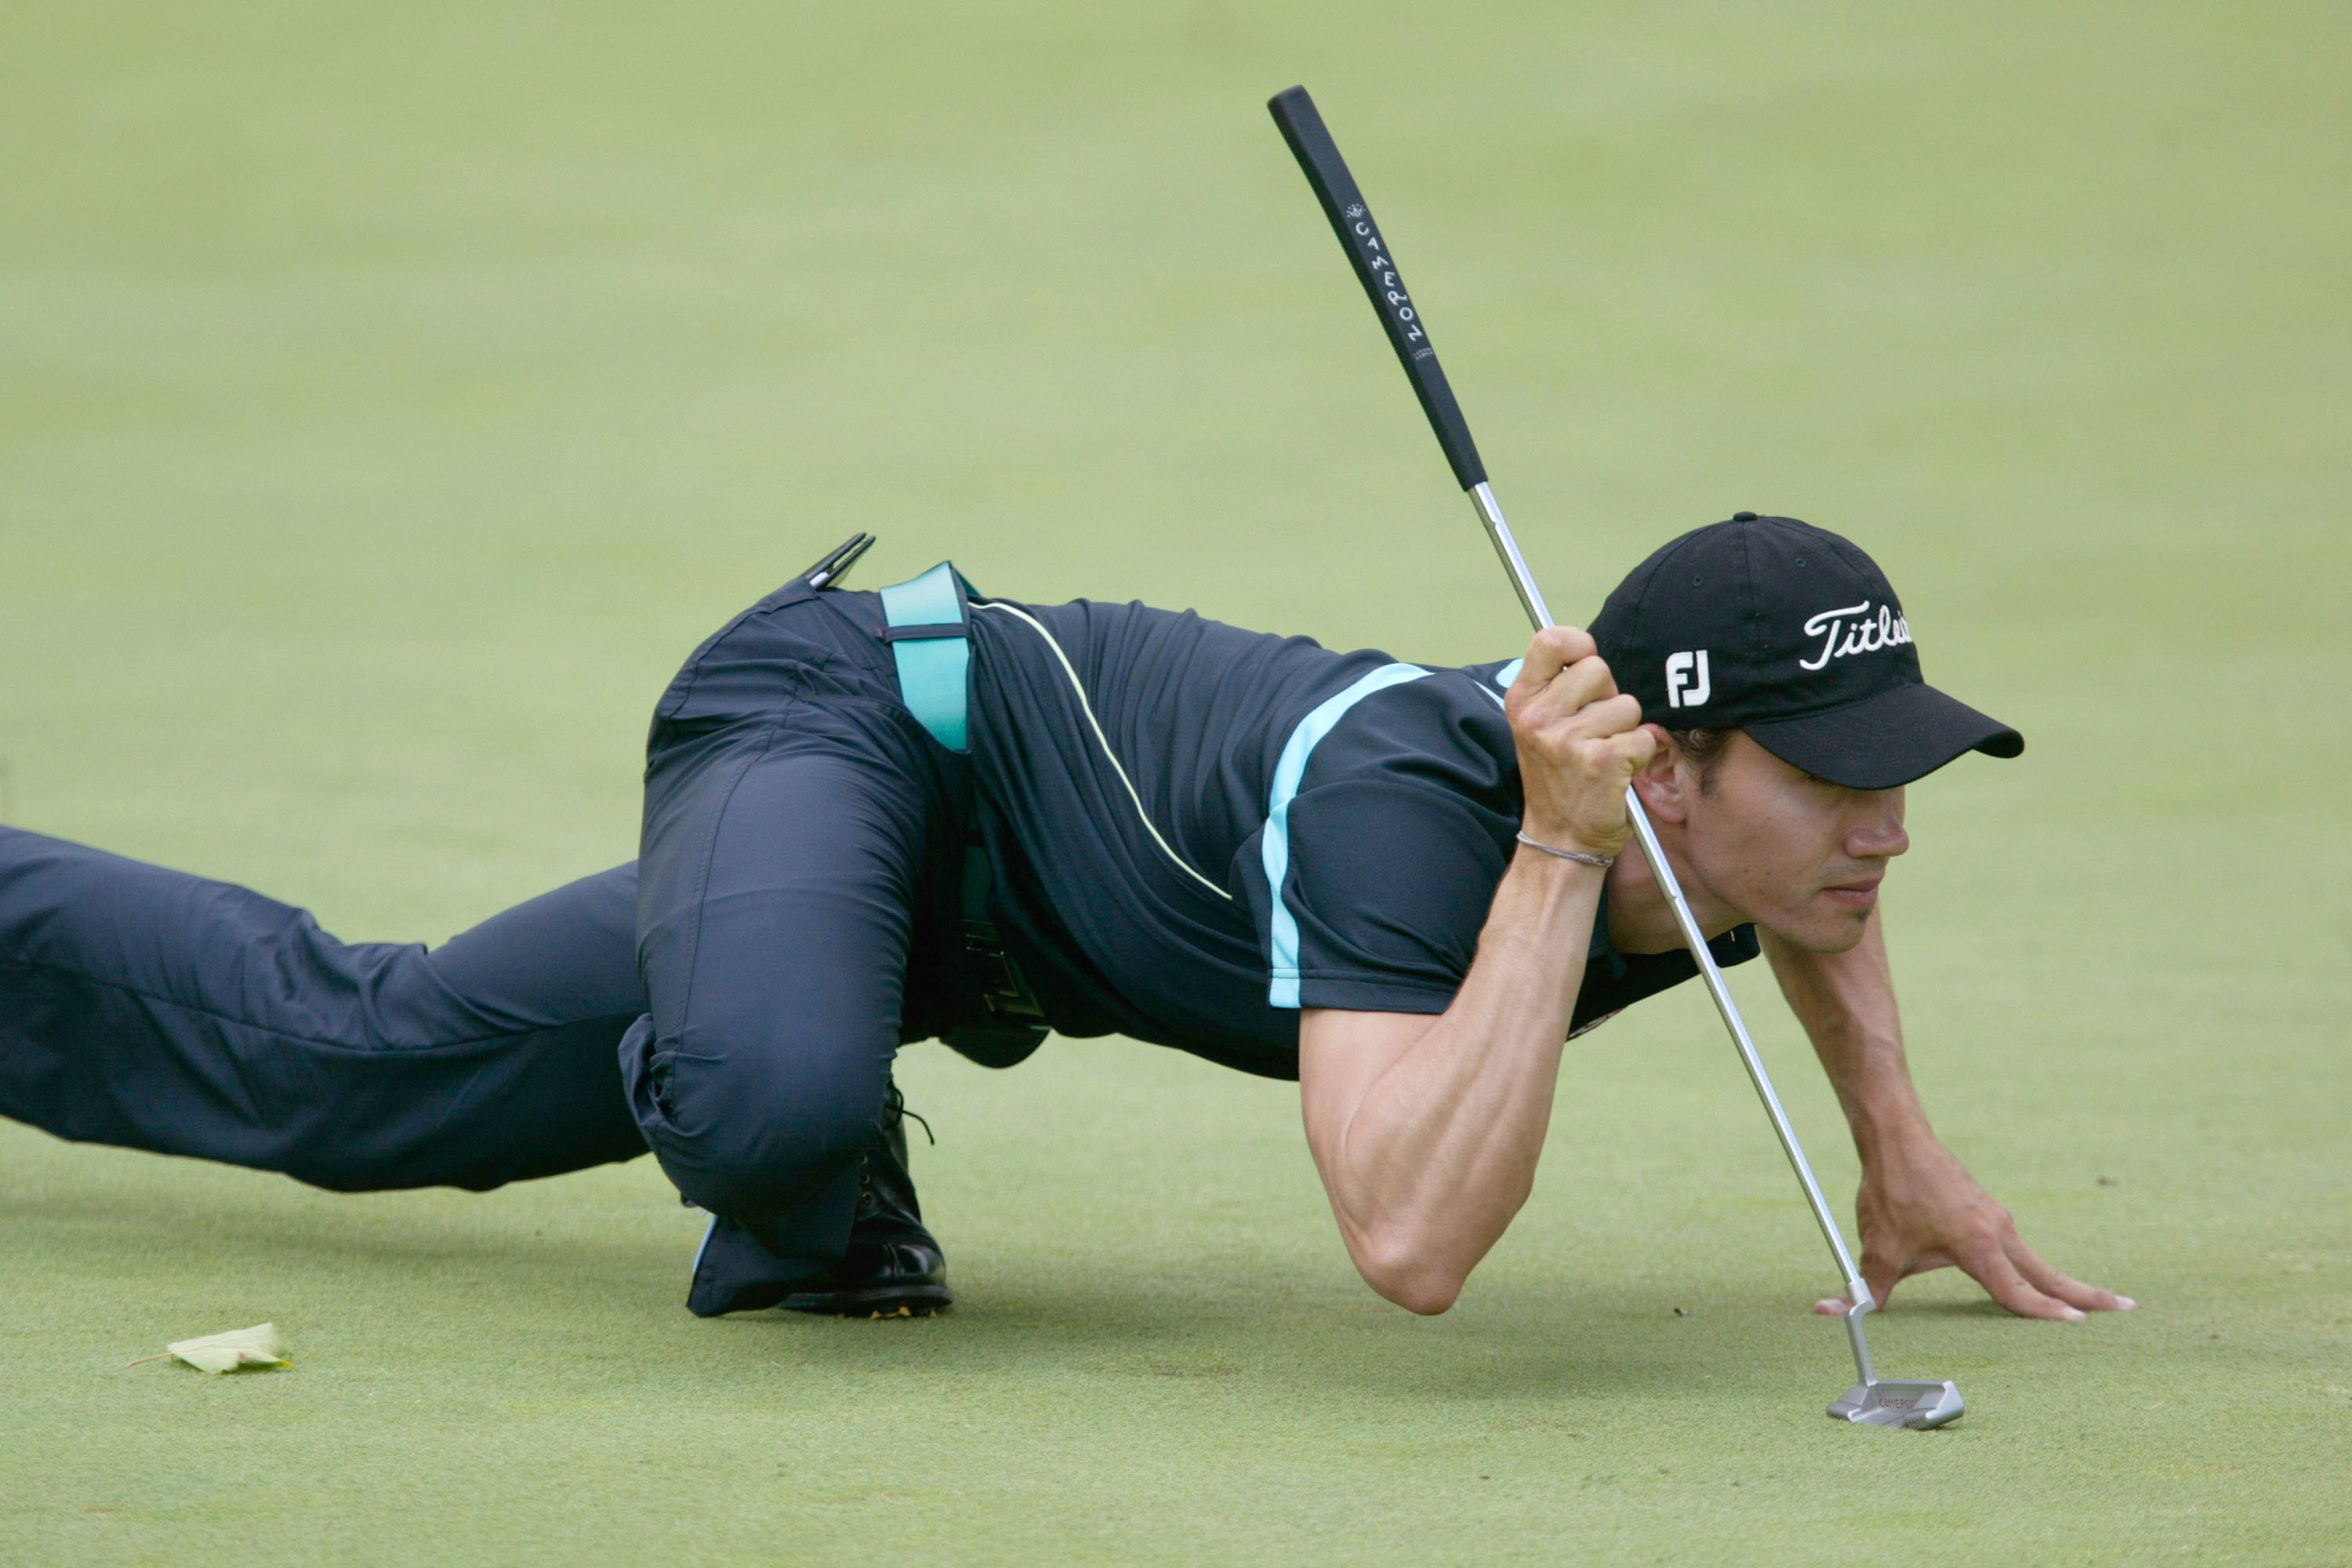 A golfer takes part in the university study